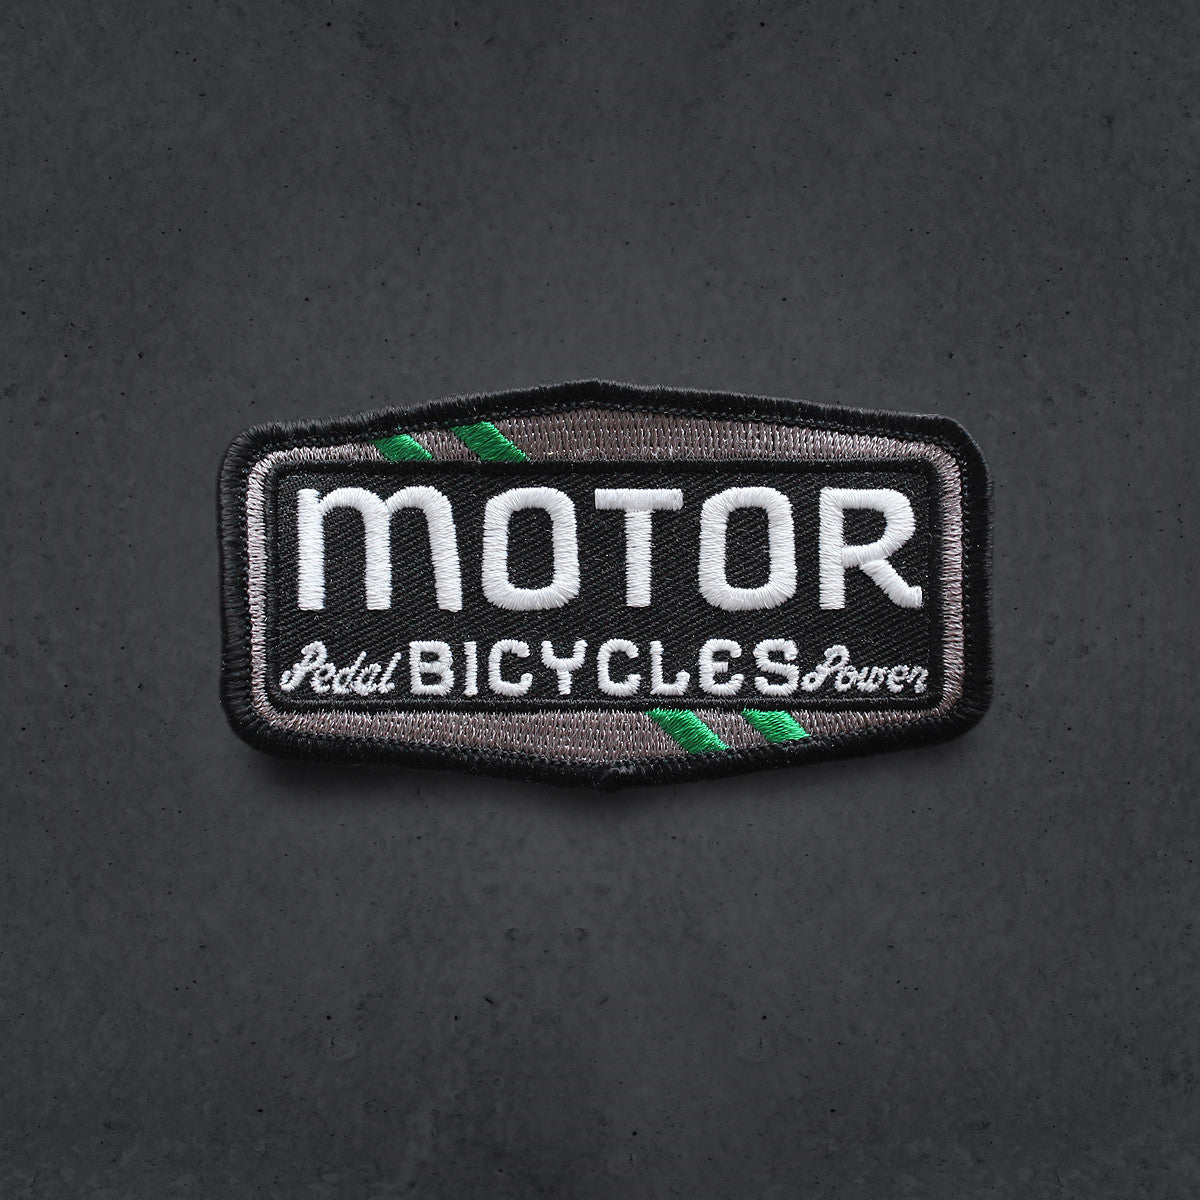 Motor Patch